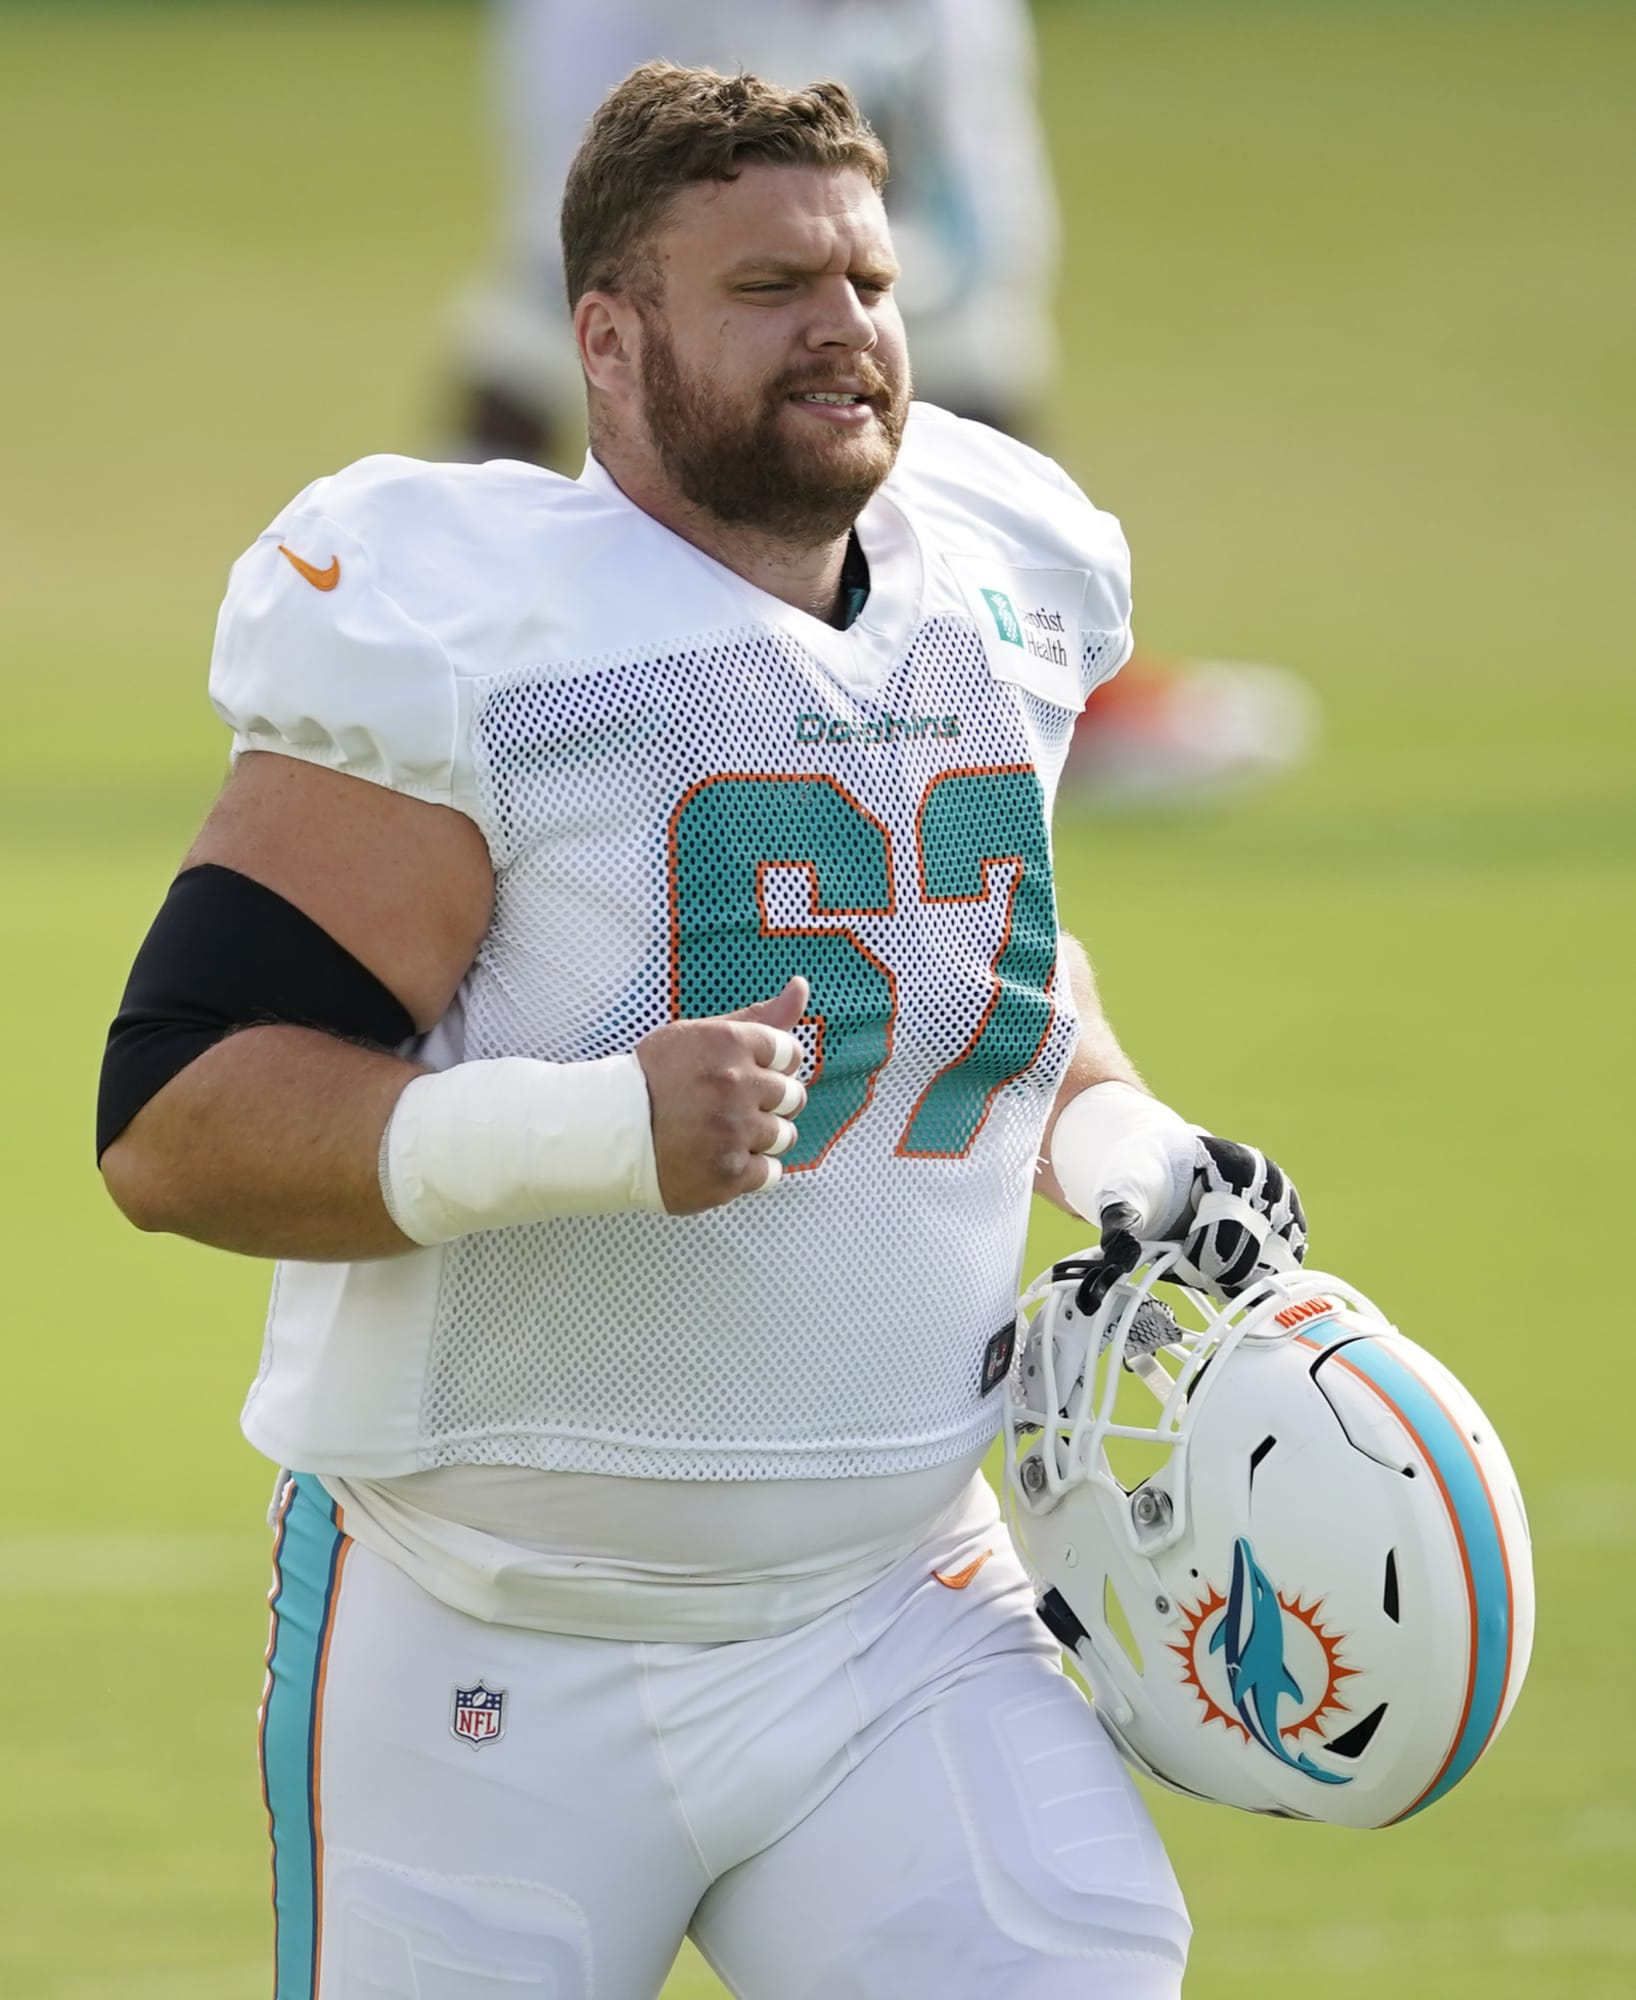 Ted Karras' quote about joining Dolphins is a shot at Patriots